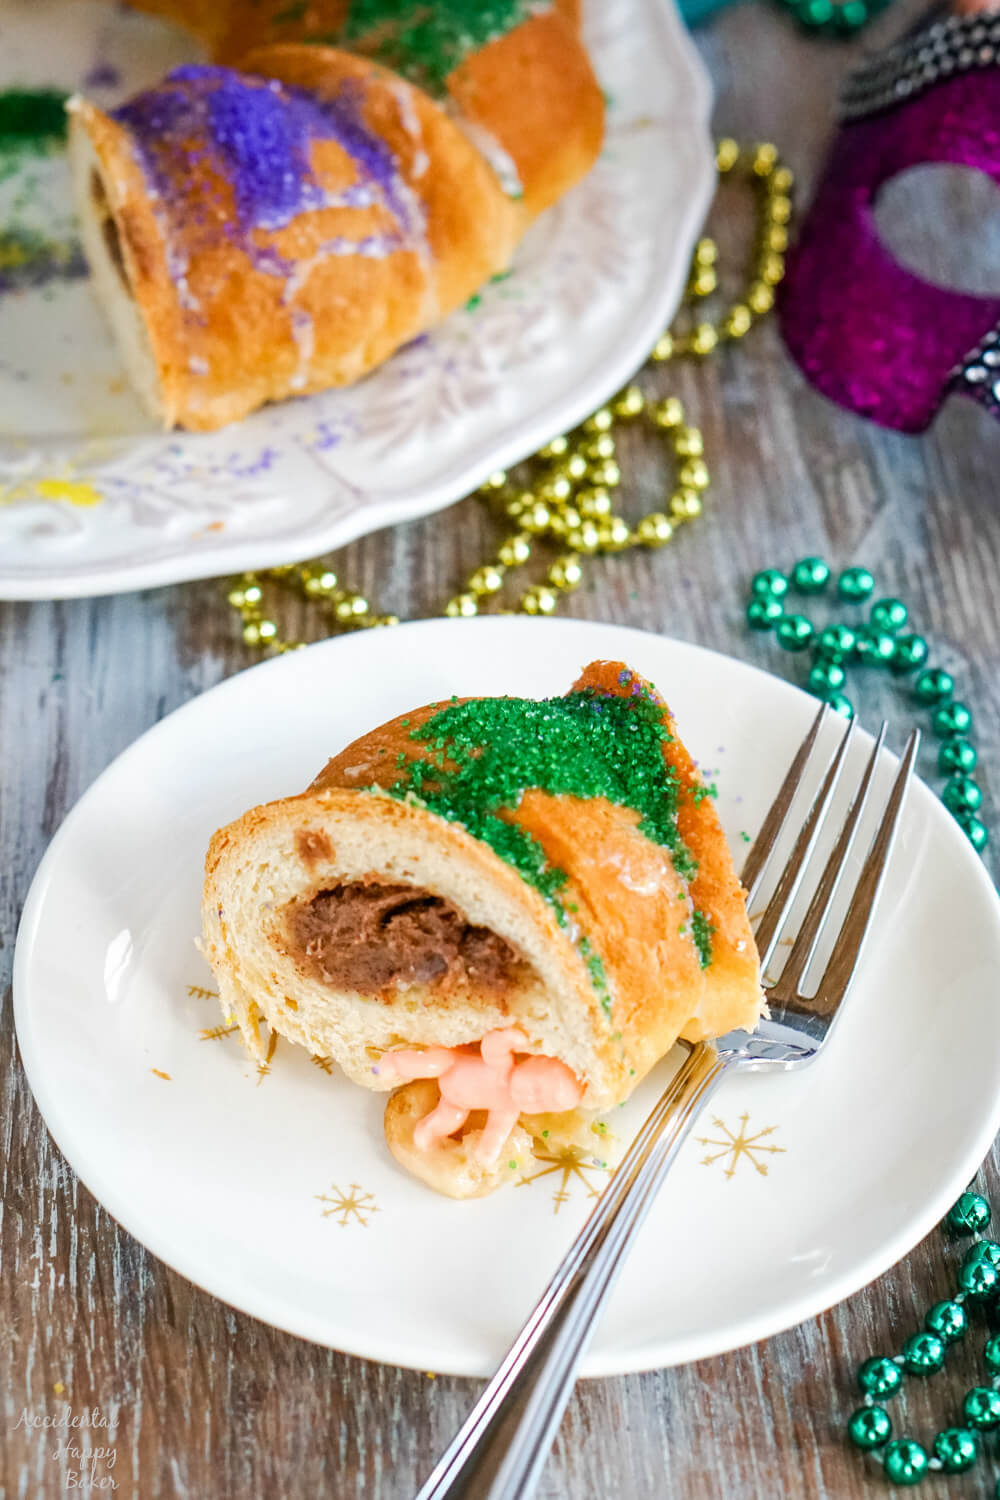 A slice of king cake on a white plate with mardi gras beads in the background.